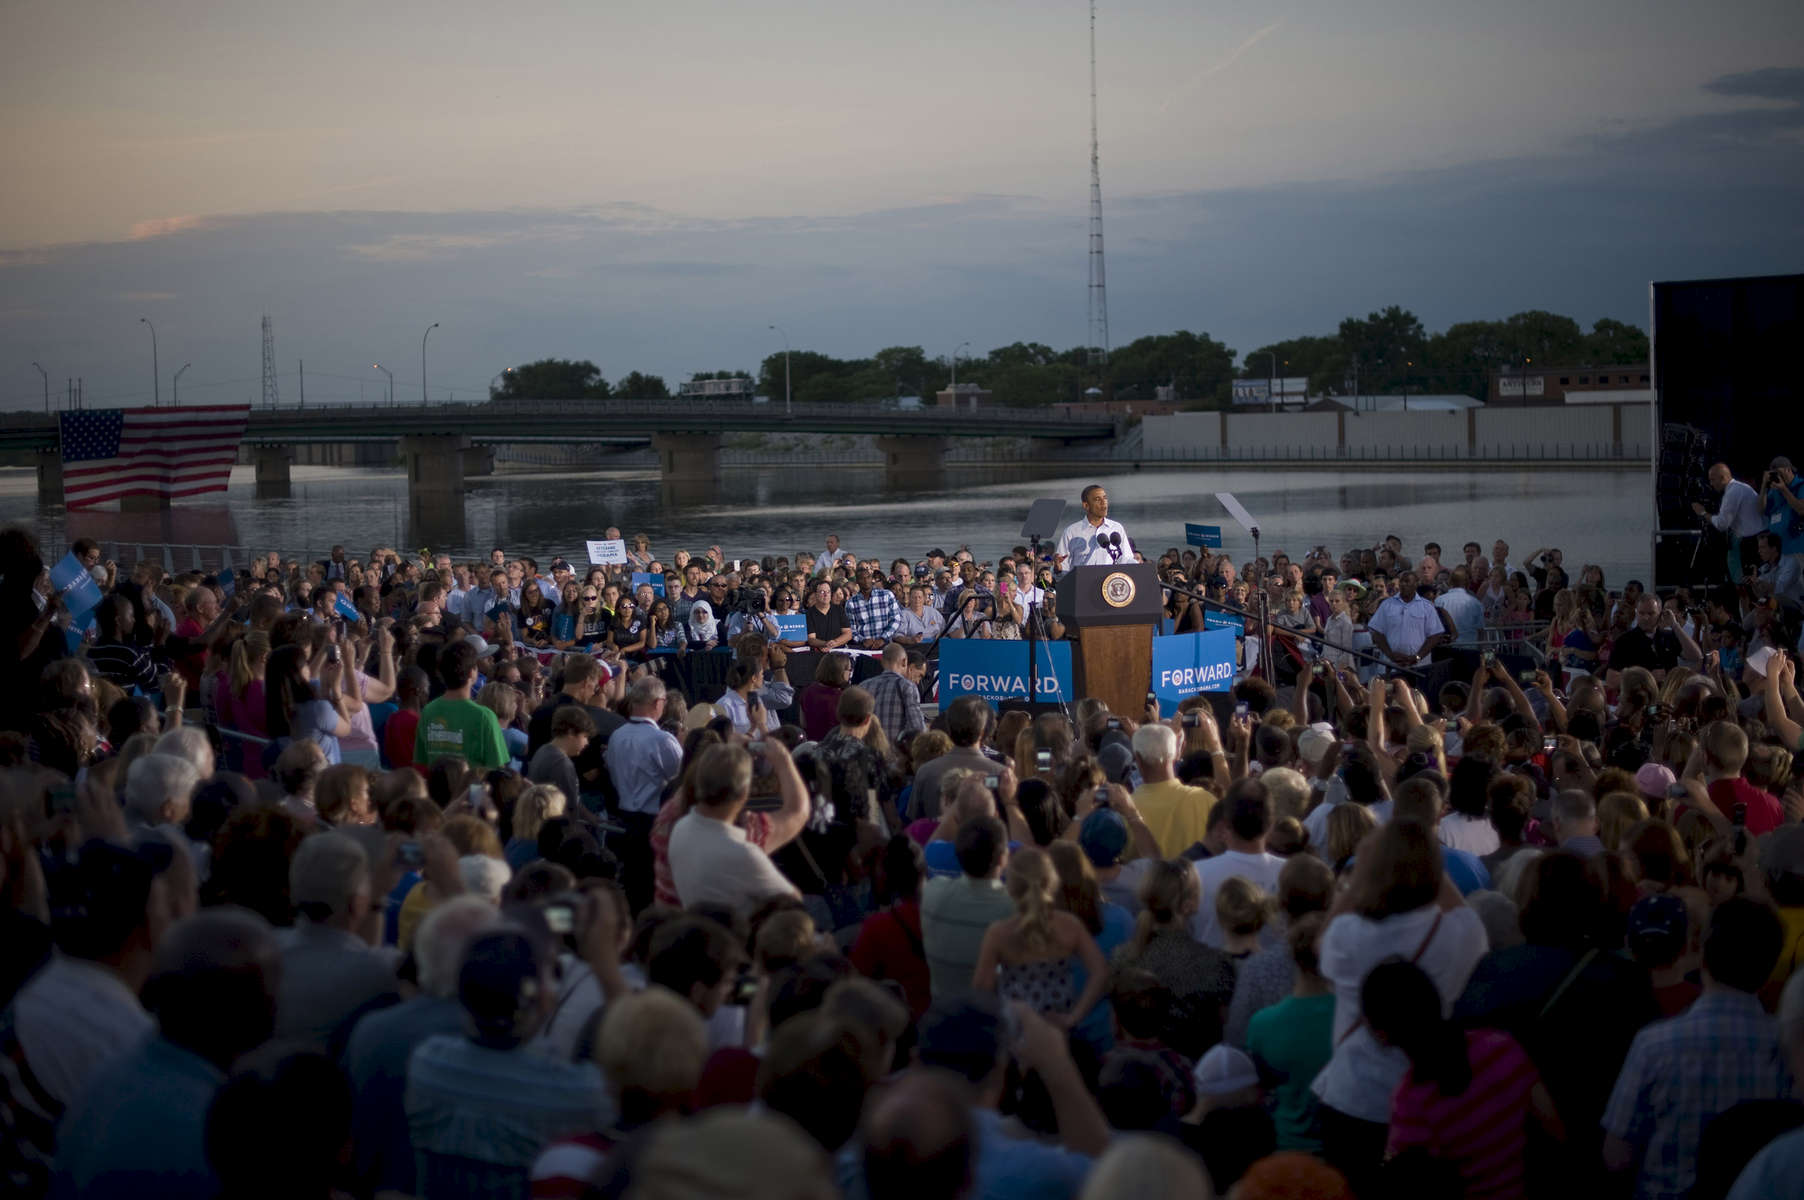 August 14th, 2012 - WATERLOO, IOWA: President Barack Obama speaks at an event in Waterloo, IA. (Scout Tufankjian for Obama for America/Polaris)